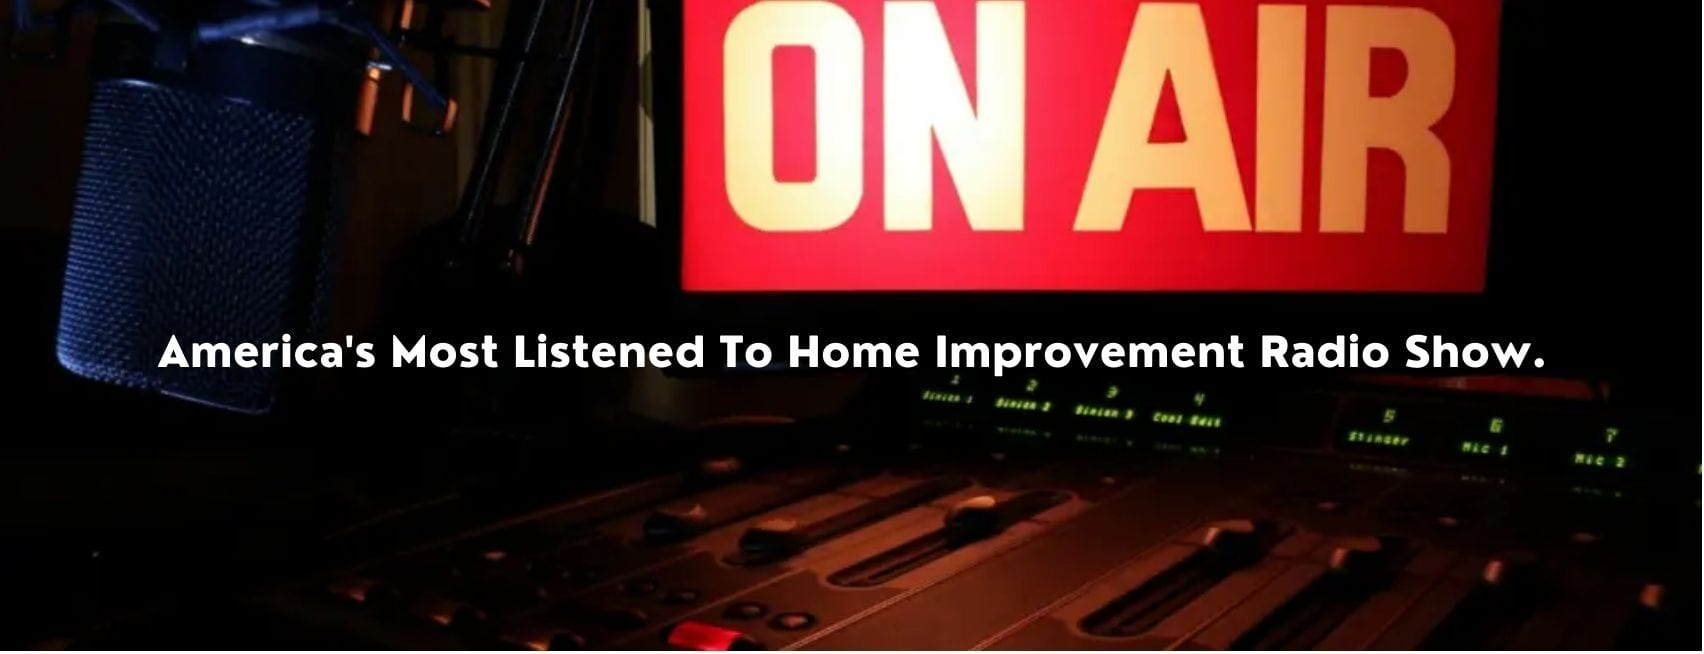 """Photo of radio sound board with lit """"on Air"""" sign and mic in background. Foreground text says 'America's most listened to home improvement radio show'."""